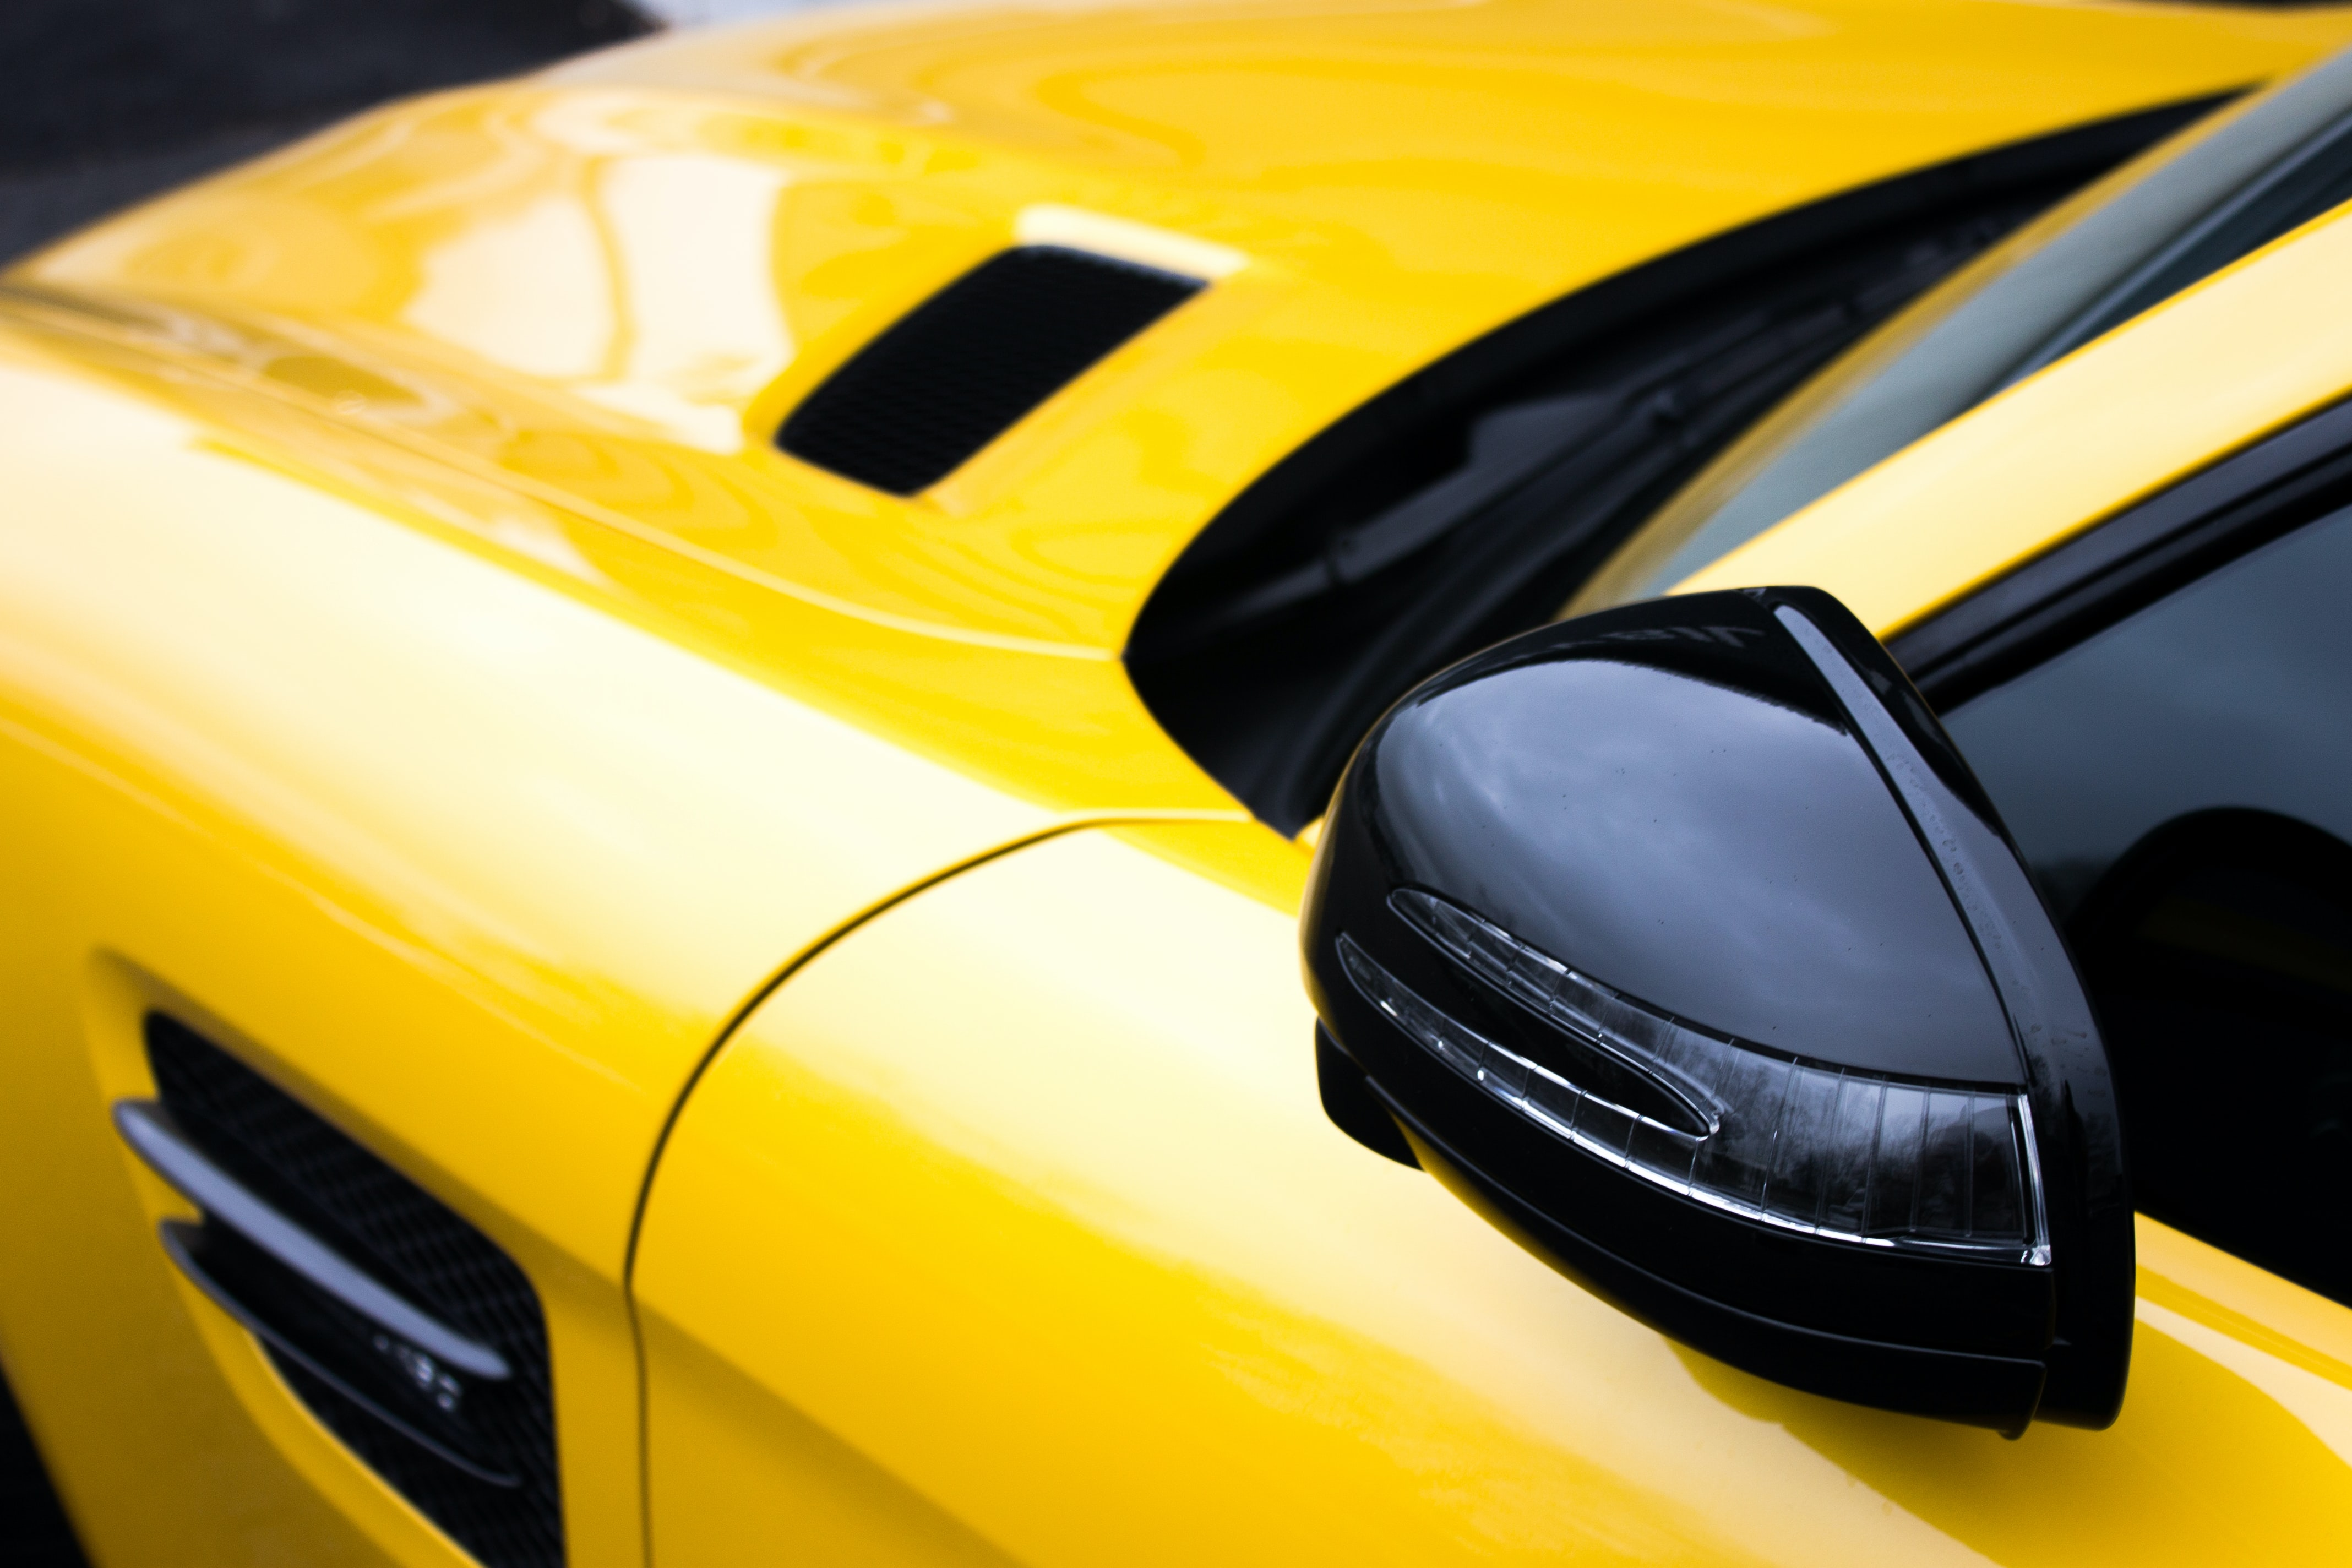 closeup photo of yellow and black car